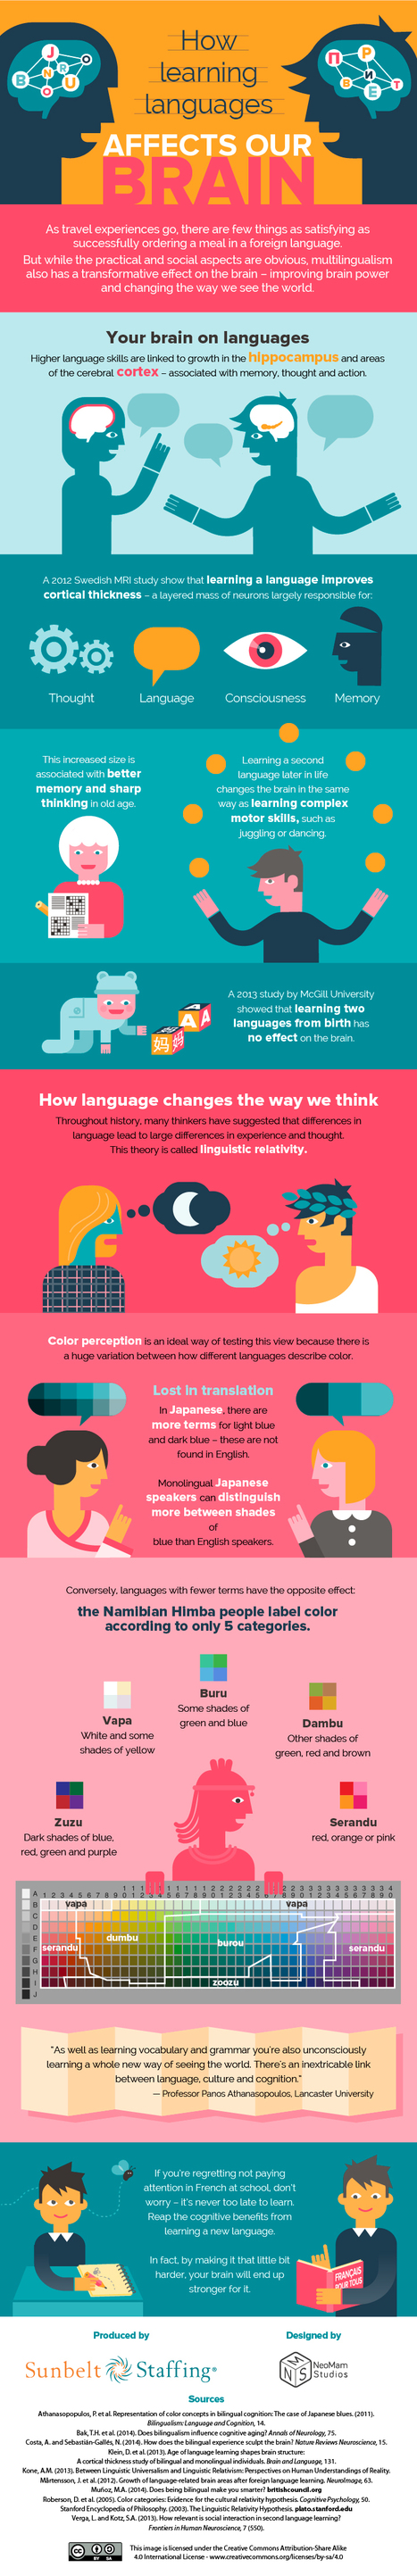 How Does Learning A New Language Affect Your Brain? | Learning & Mind & Brain | Scoop.it